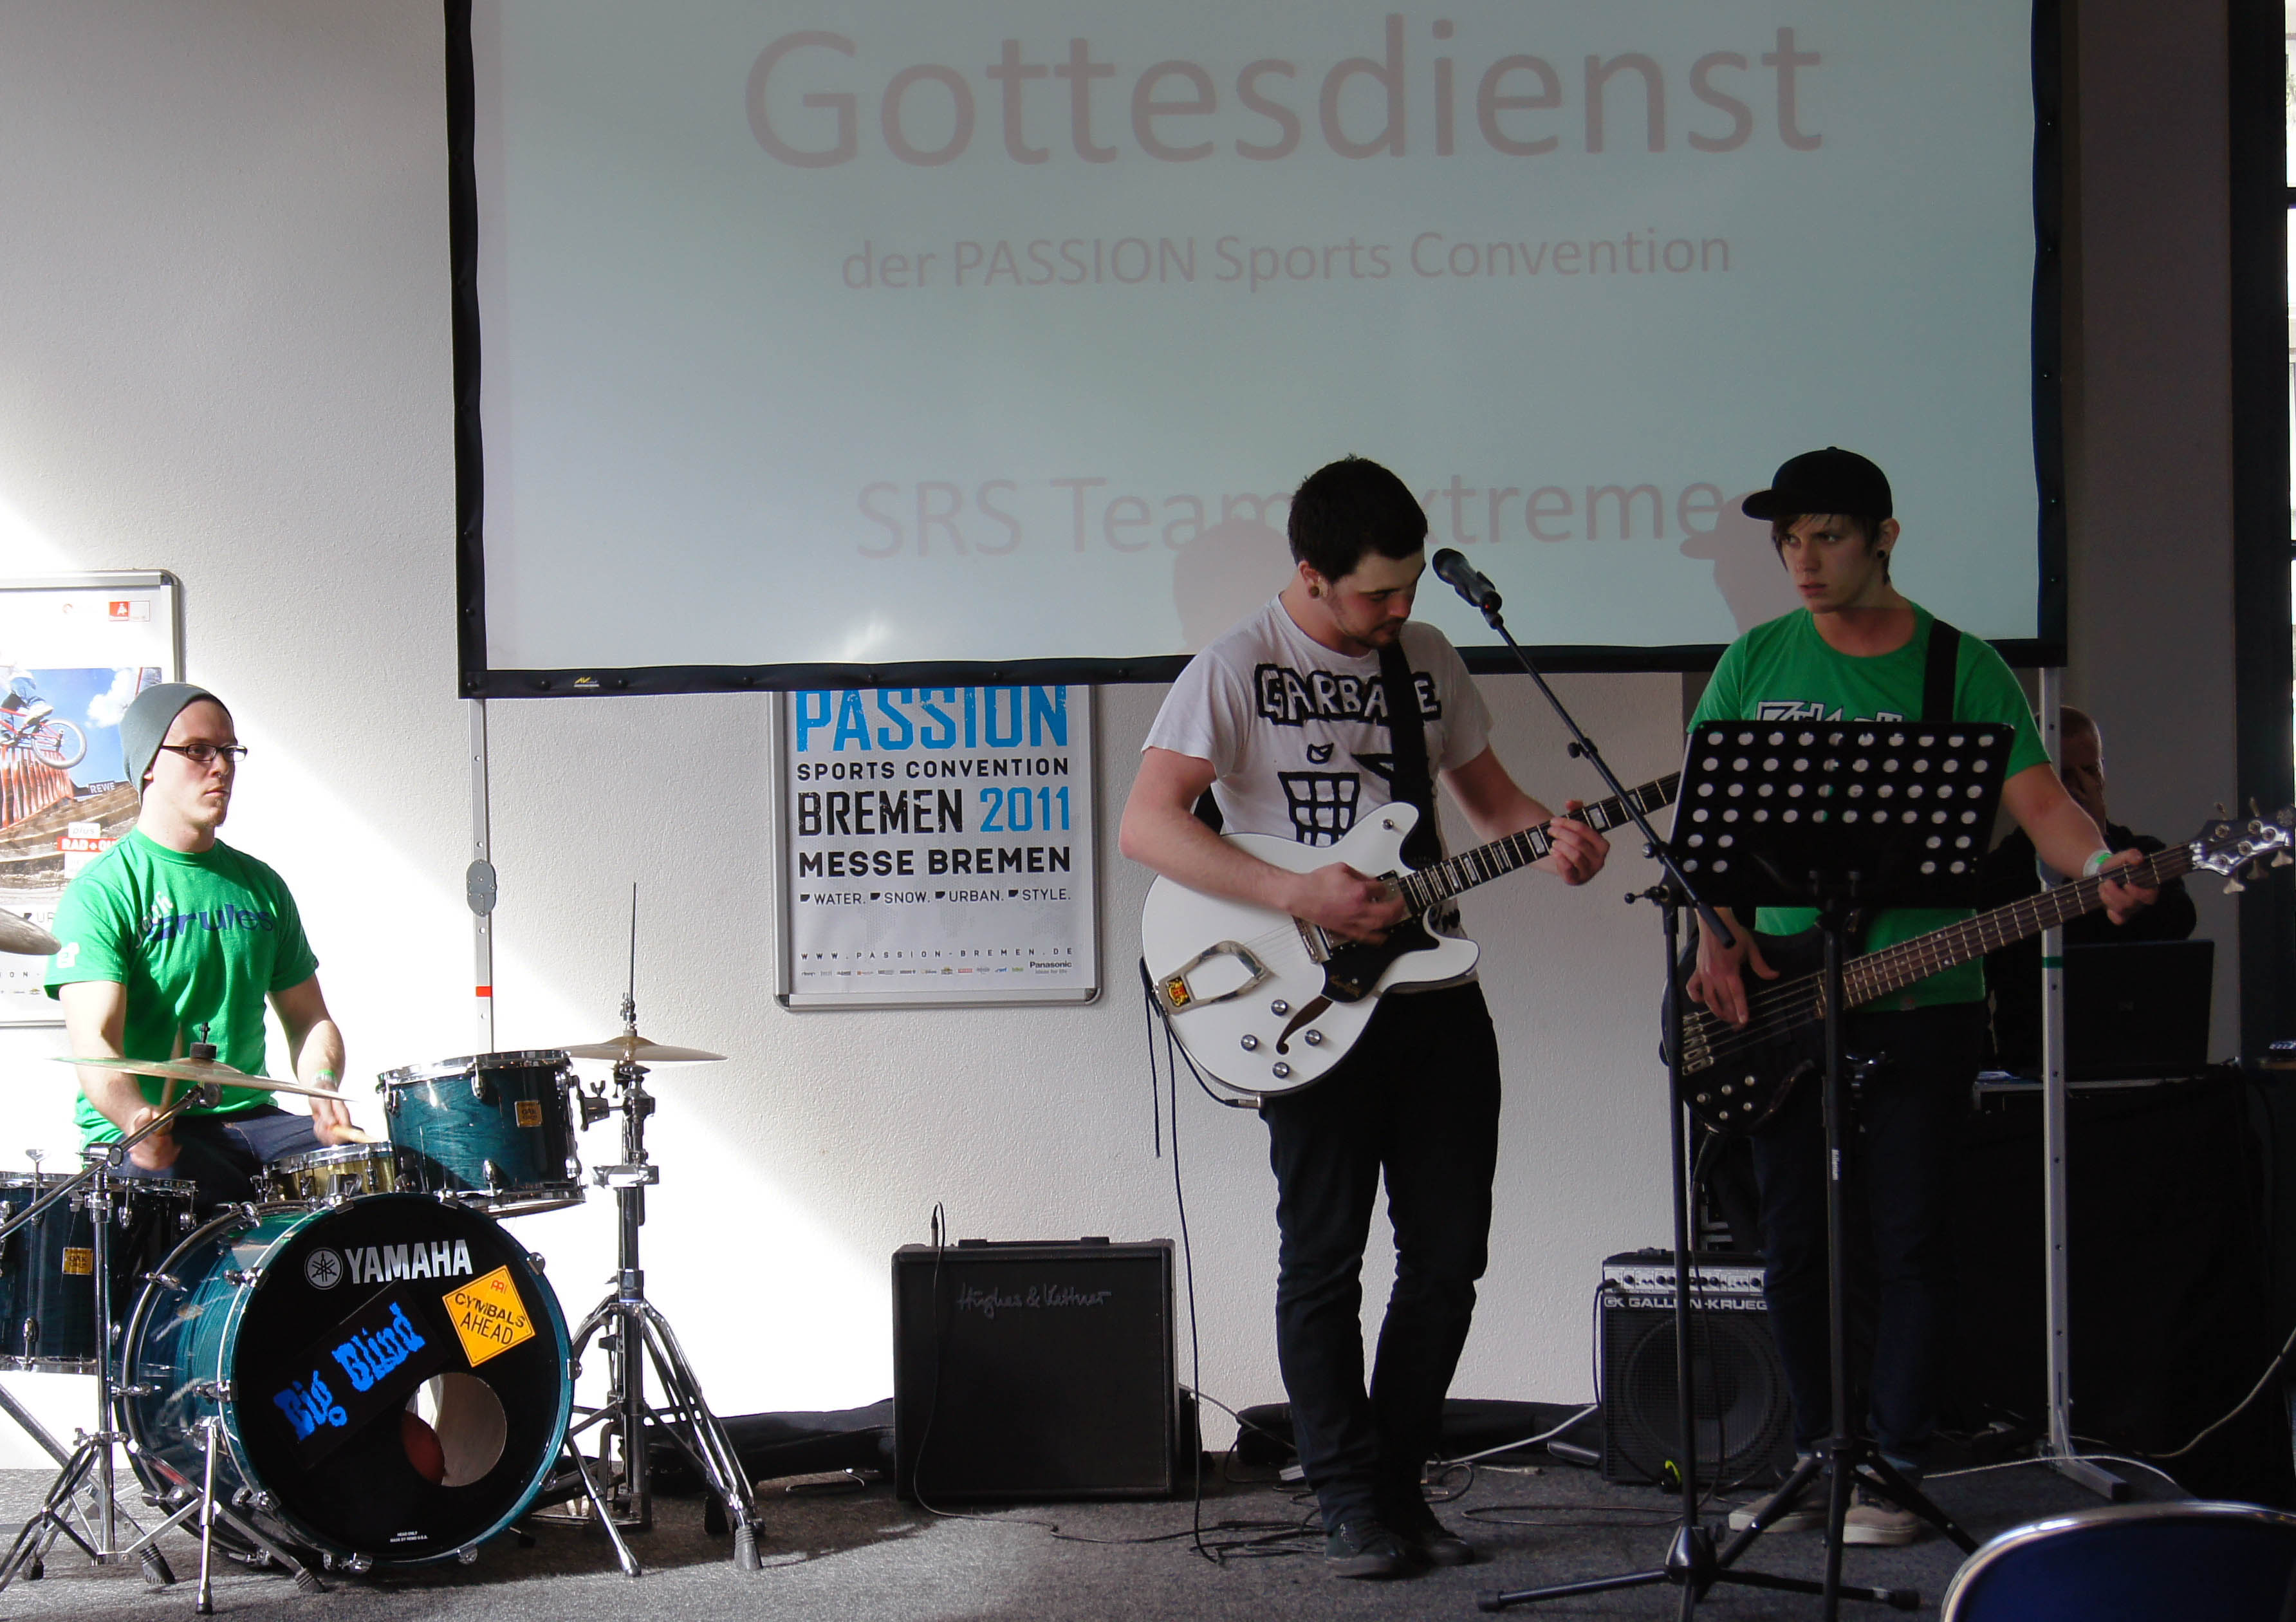 Gottesdienst Band. By Timo Mößner